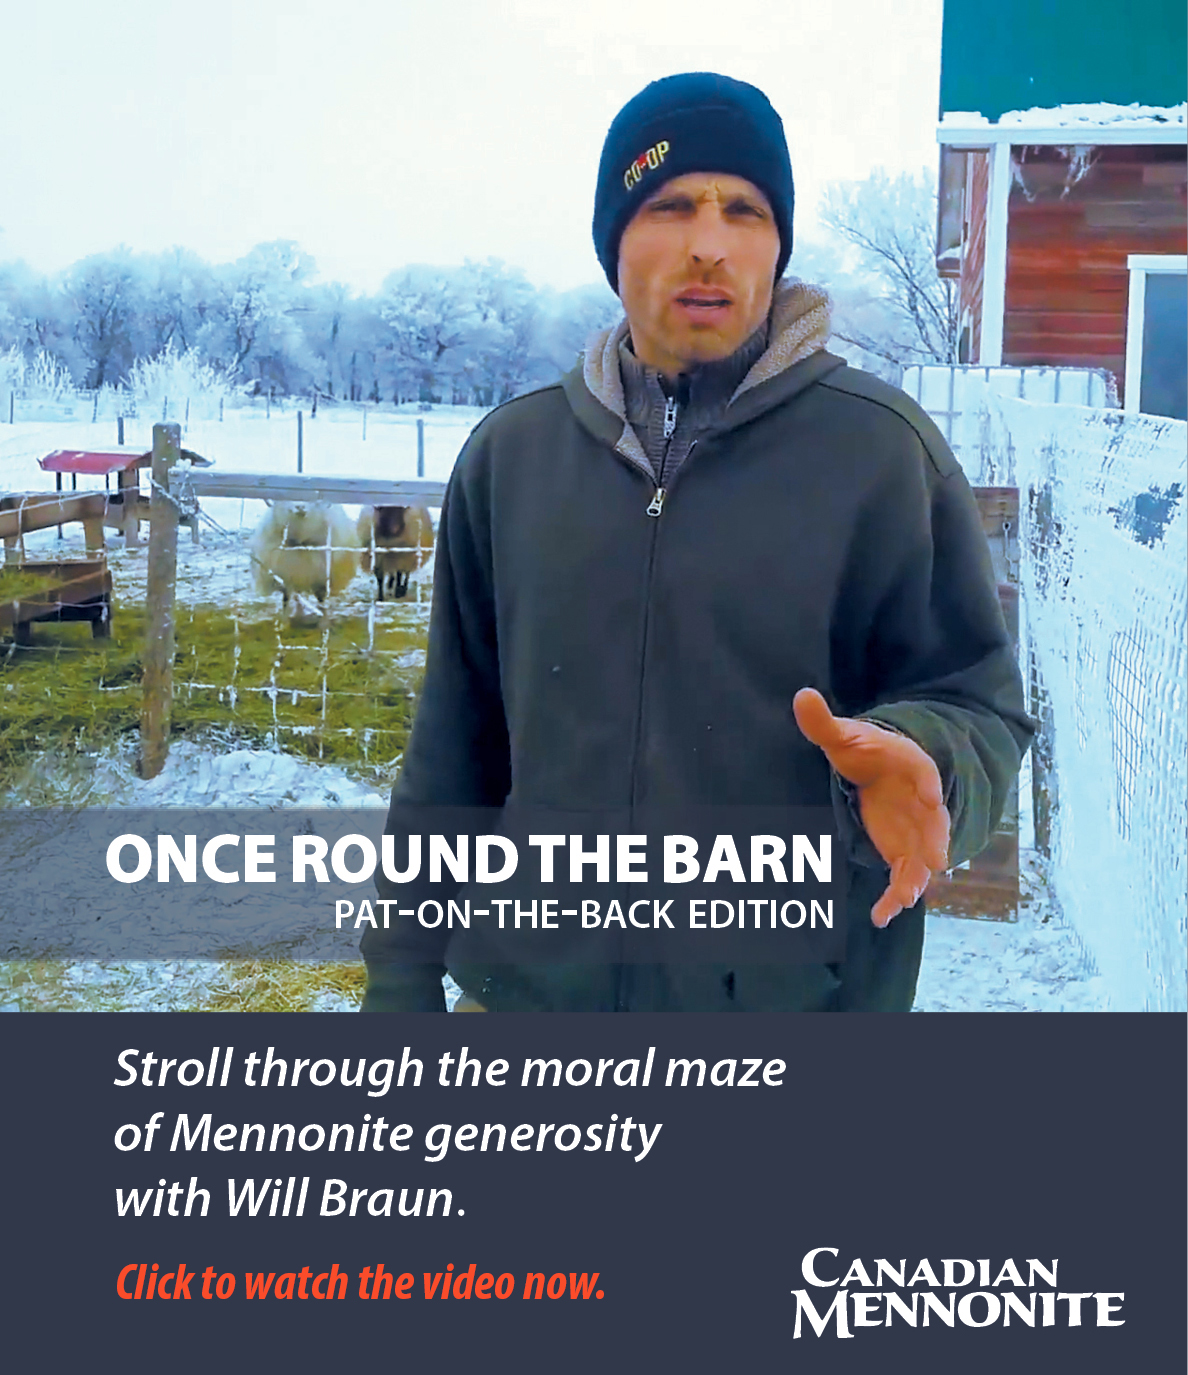 Will Braun's Once Round the Barn rant on Mennonite giving